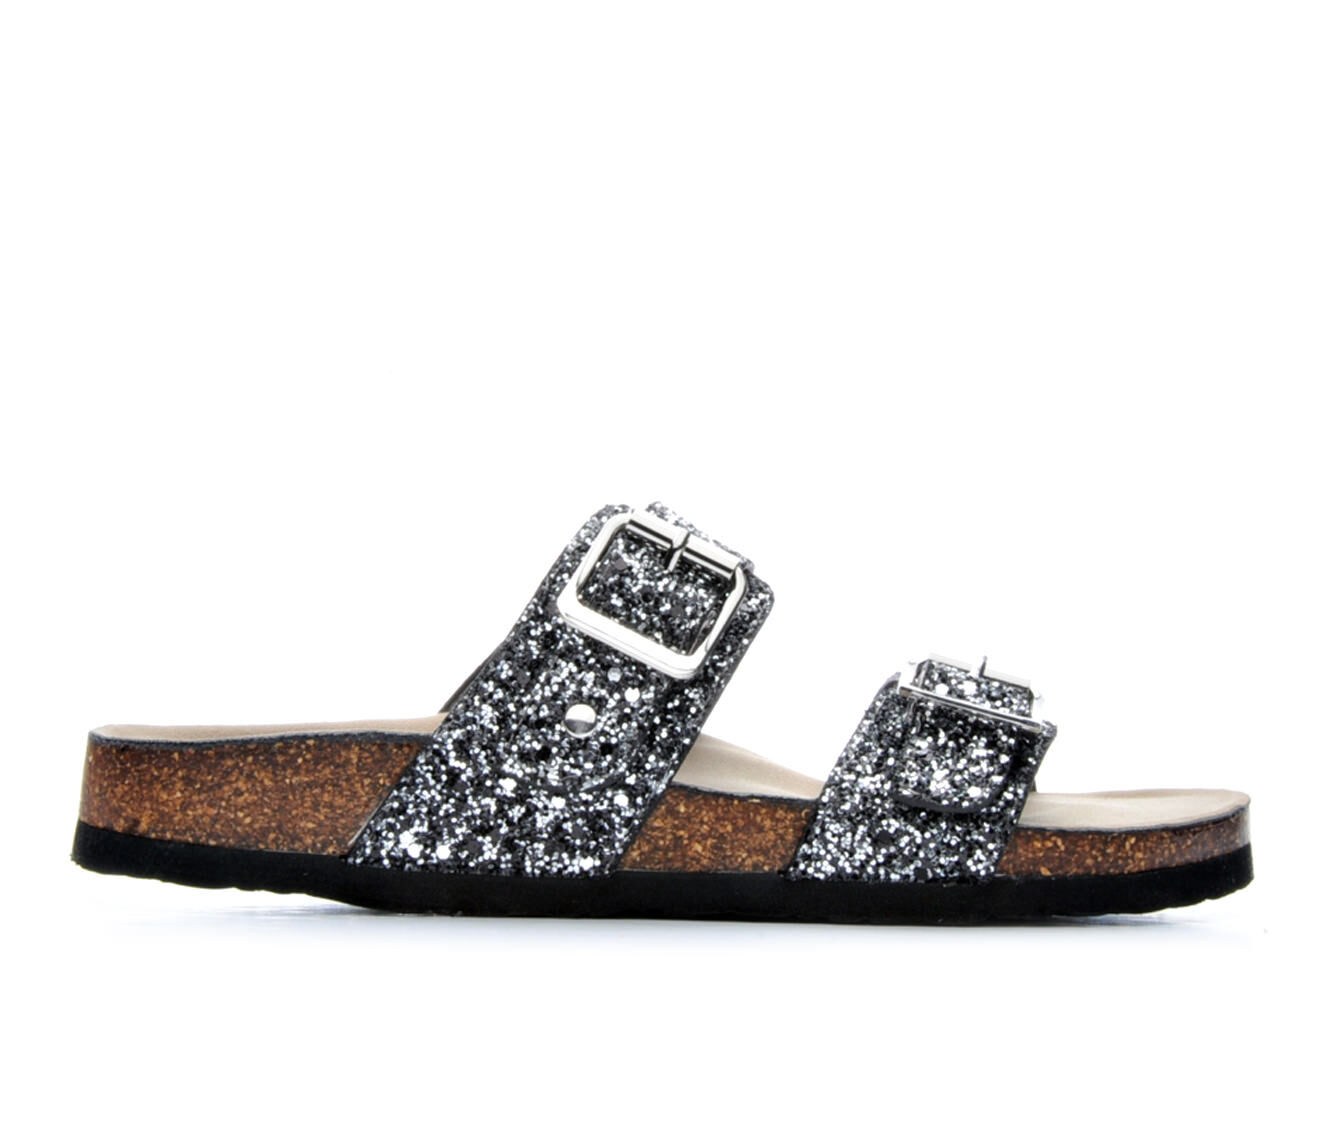 Women's Madden Girl Brando Footbed Sandals Silver Multi